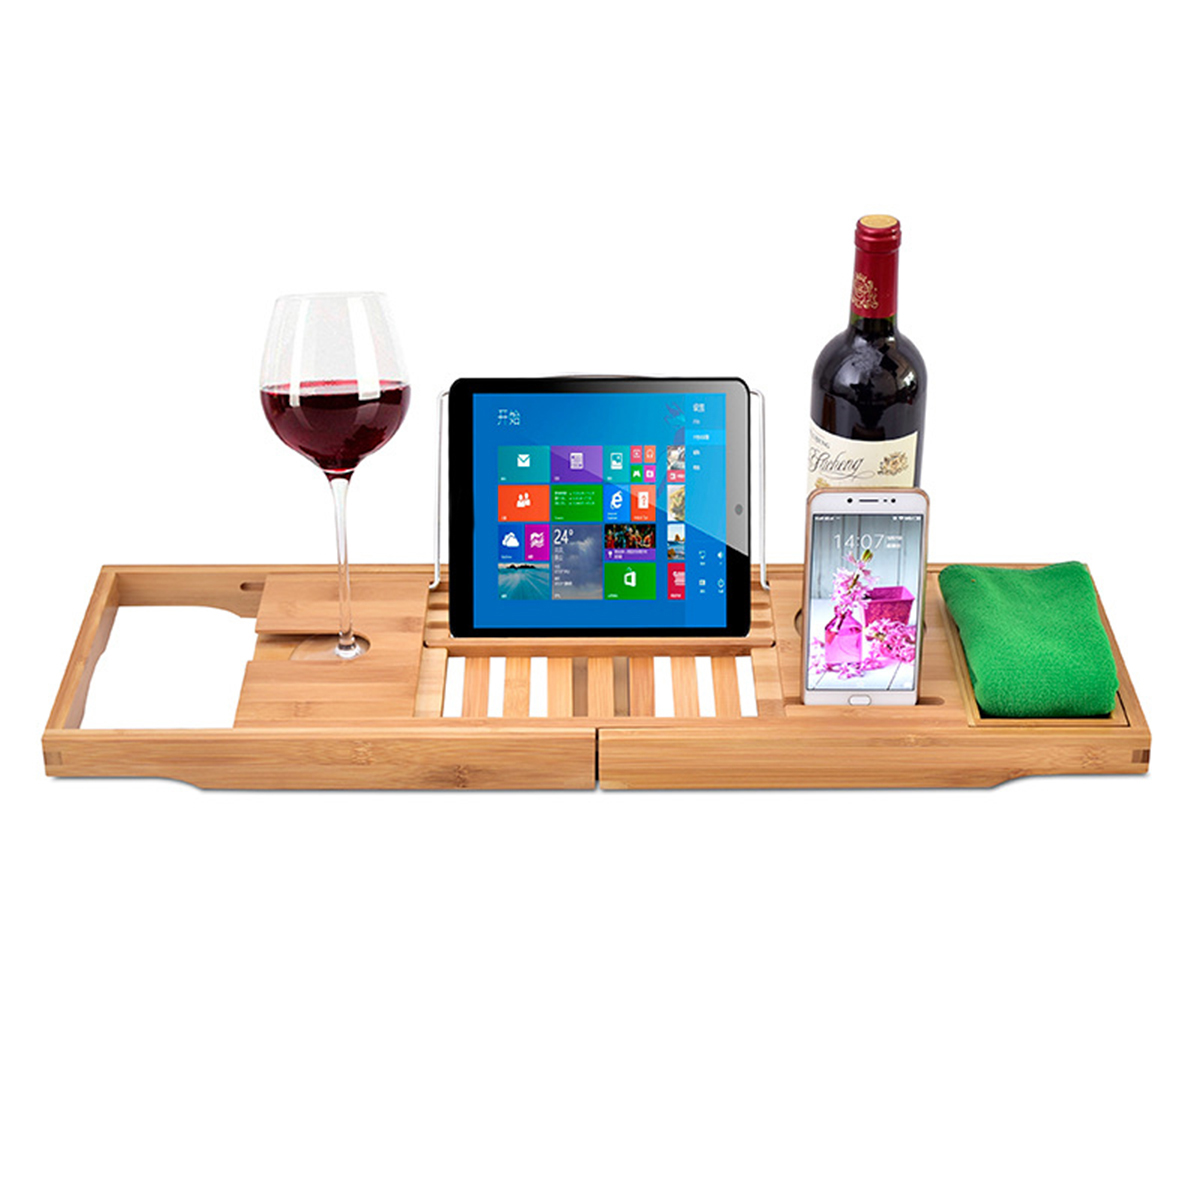 Luxury Bathroom Adjustable Bathtub Rack Bamboo Caddy Shelf Shower Tub Tray Over Book Towel Wine Holder Support